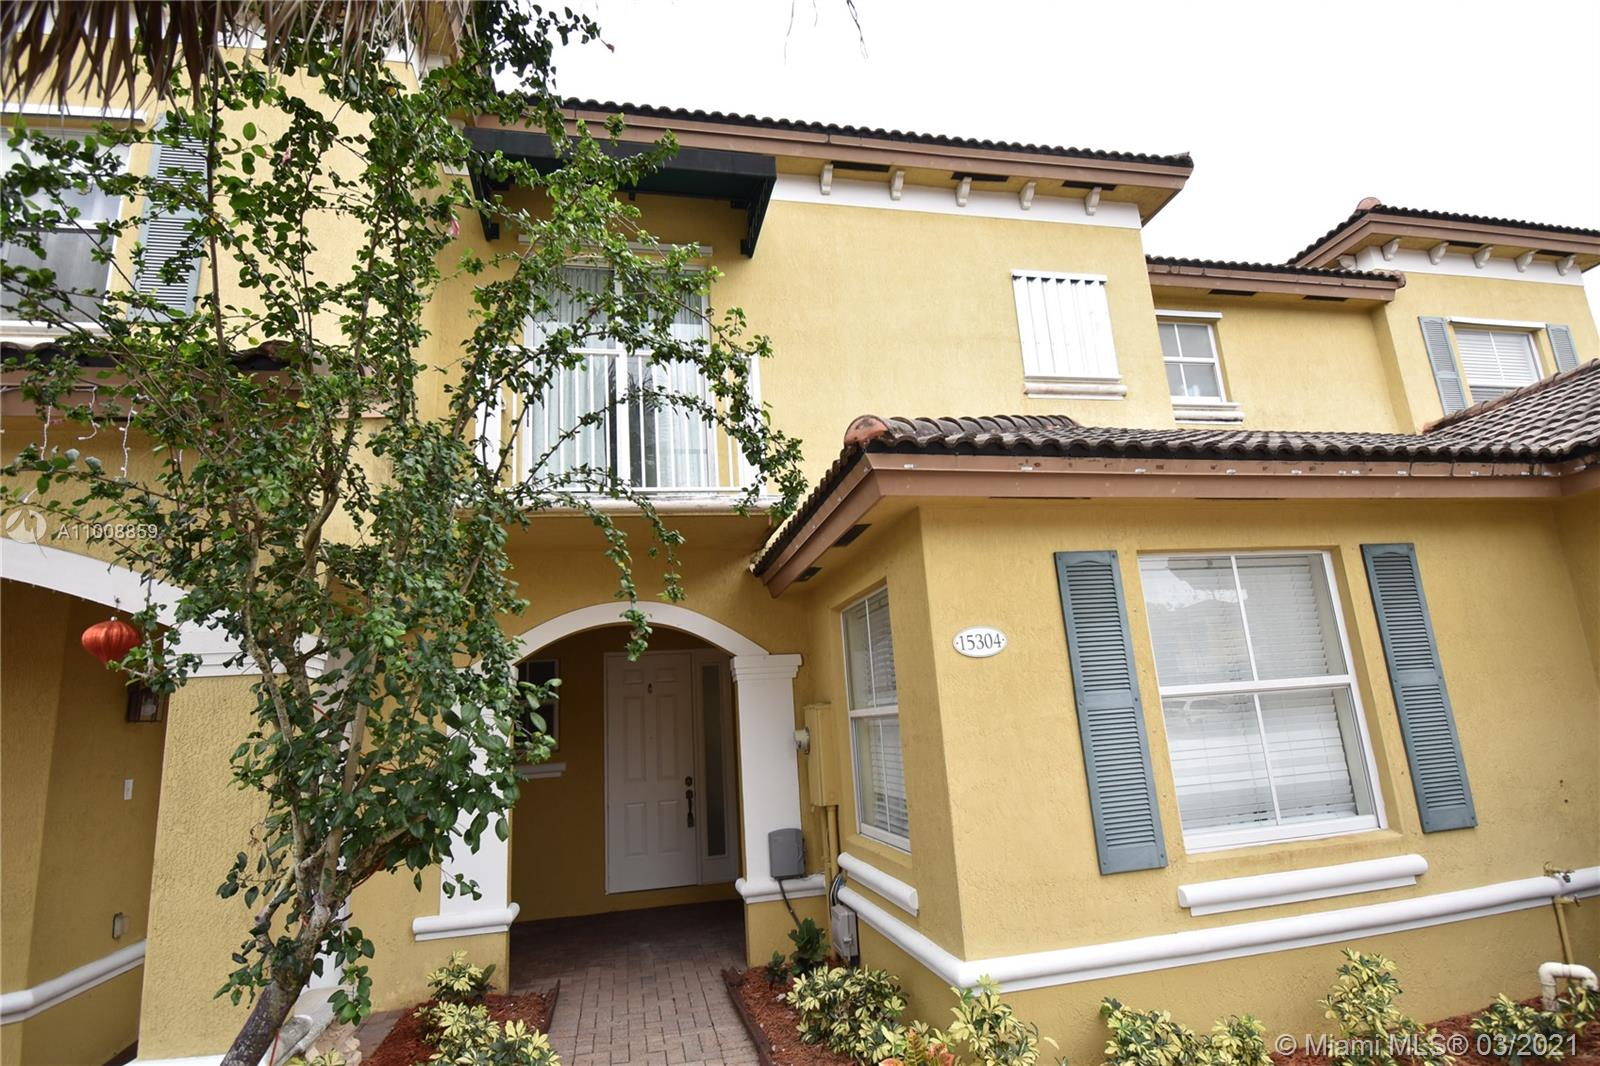 Details for 15304 88th Ter  N-a, Miami, FL 33196